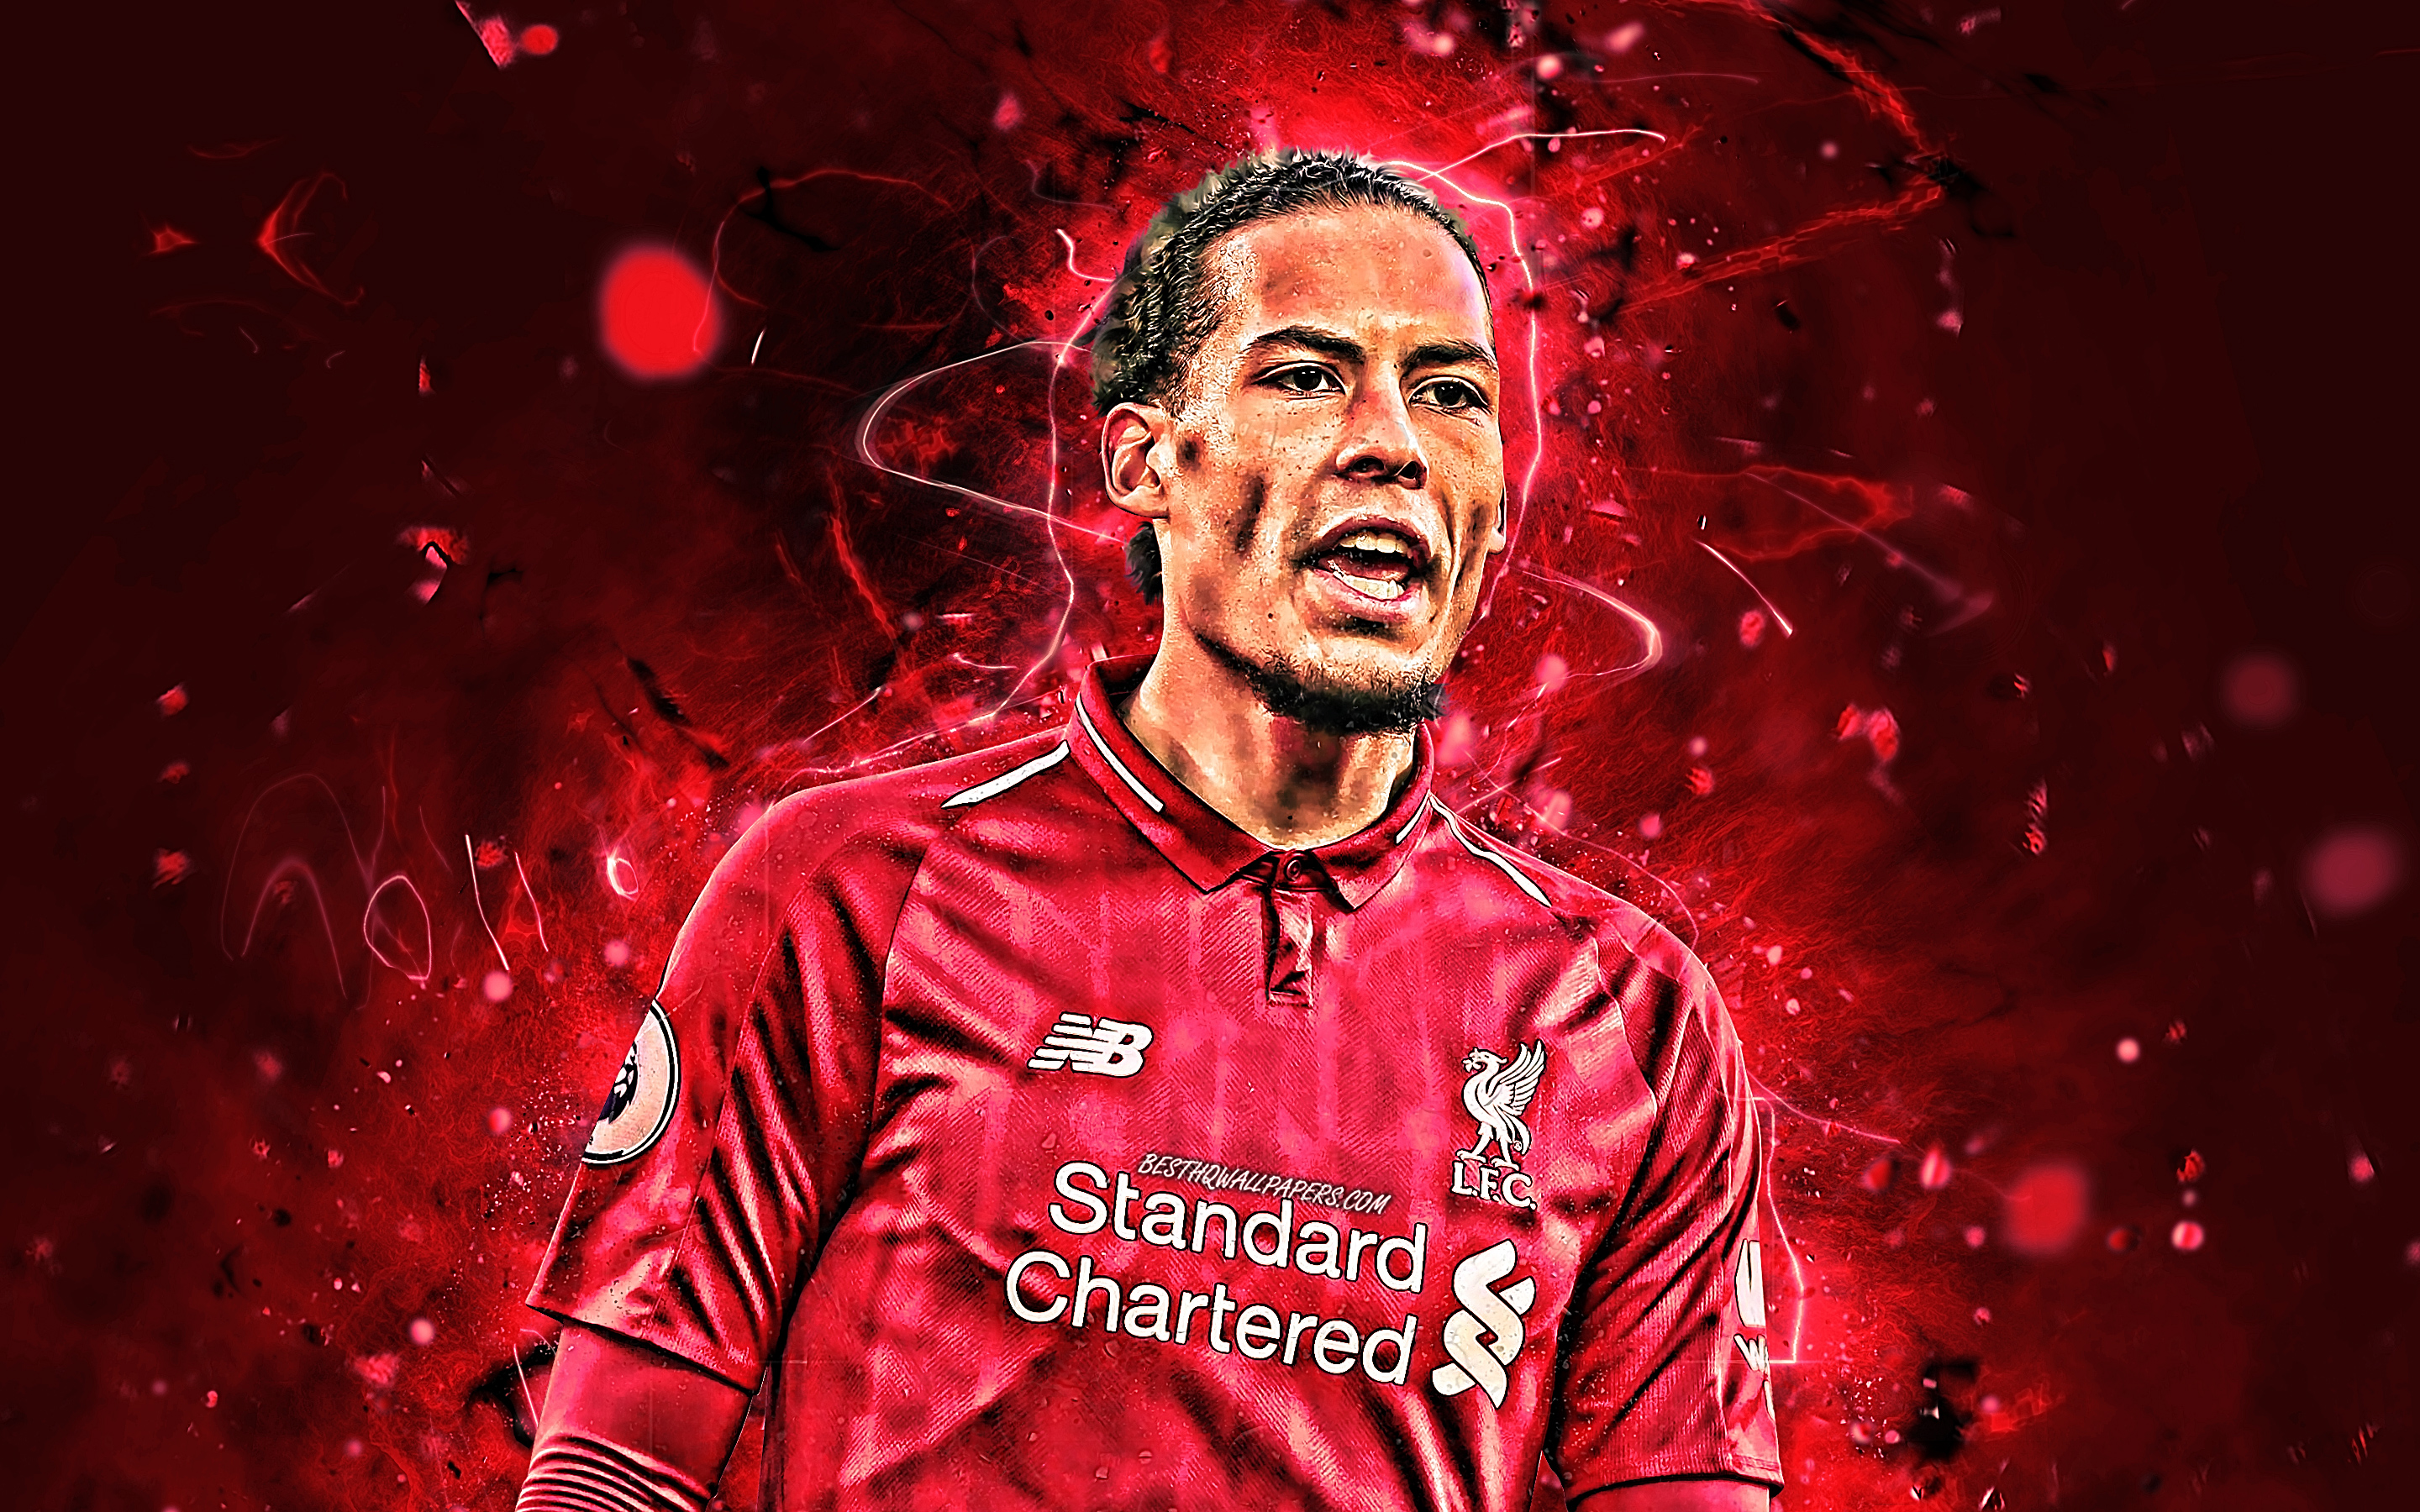 Virgil Van Dijk HD Desktop Wallpapers At Liverpool FC